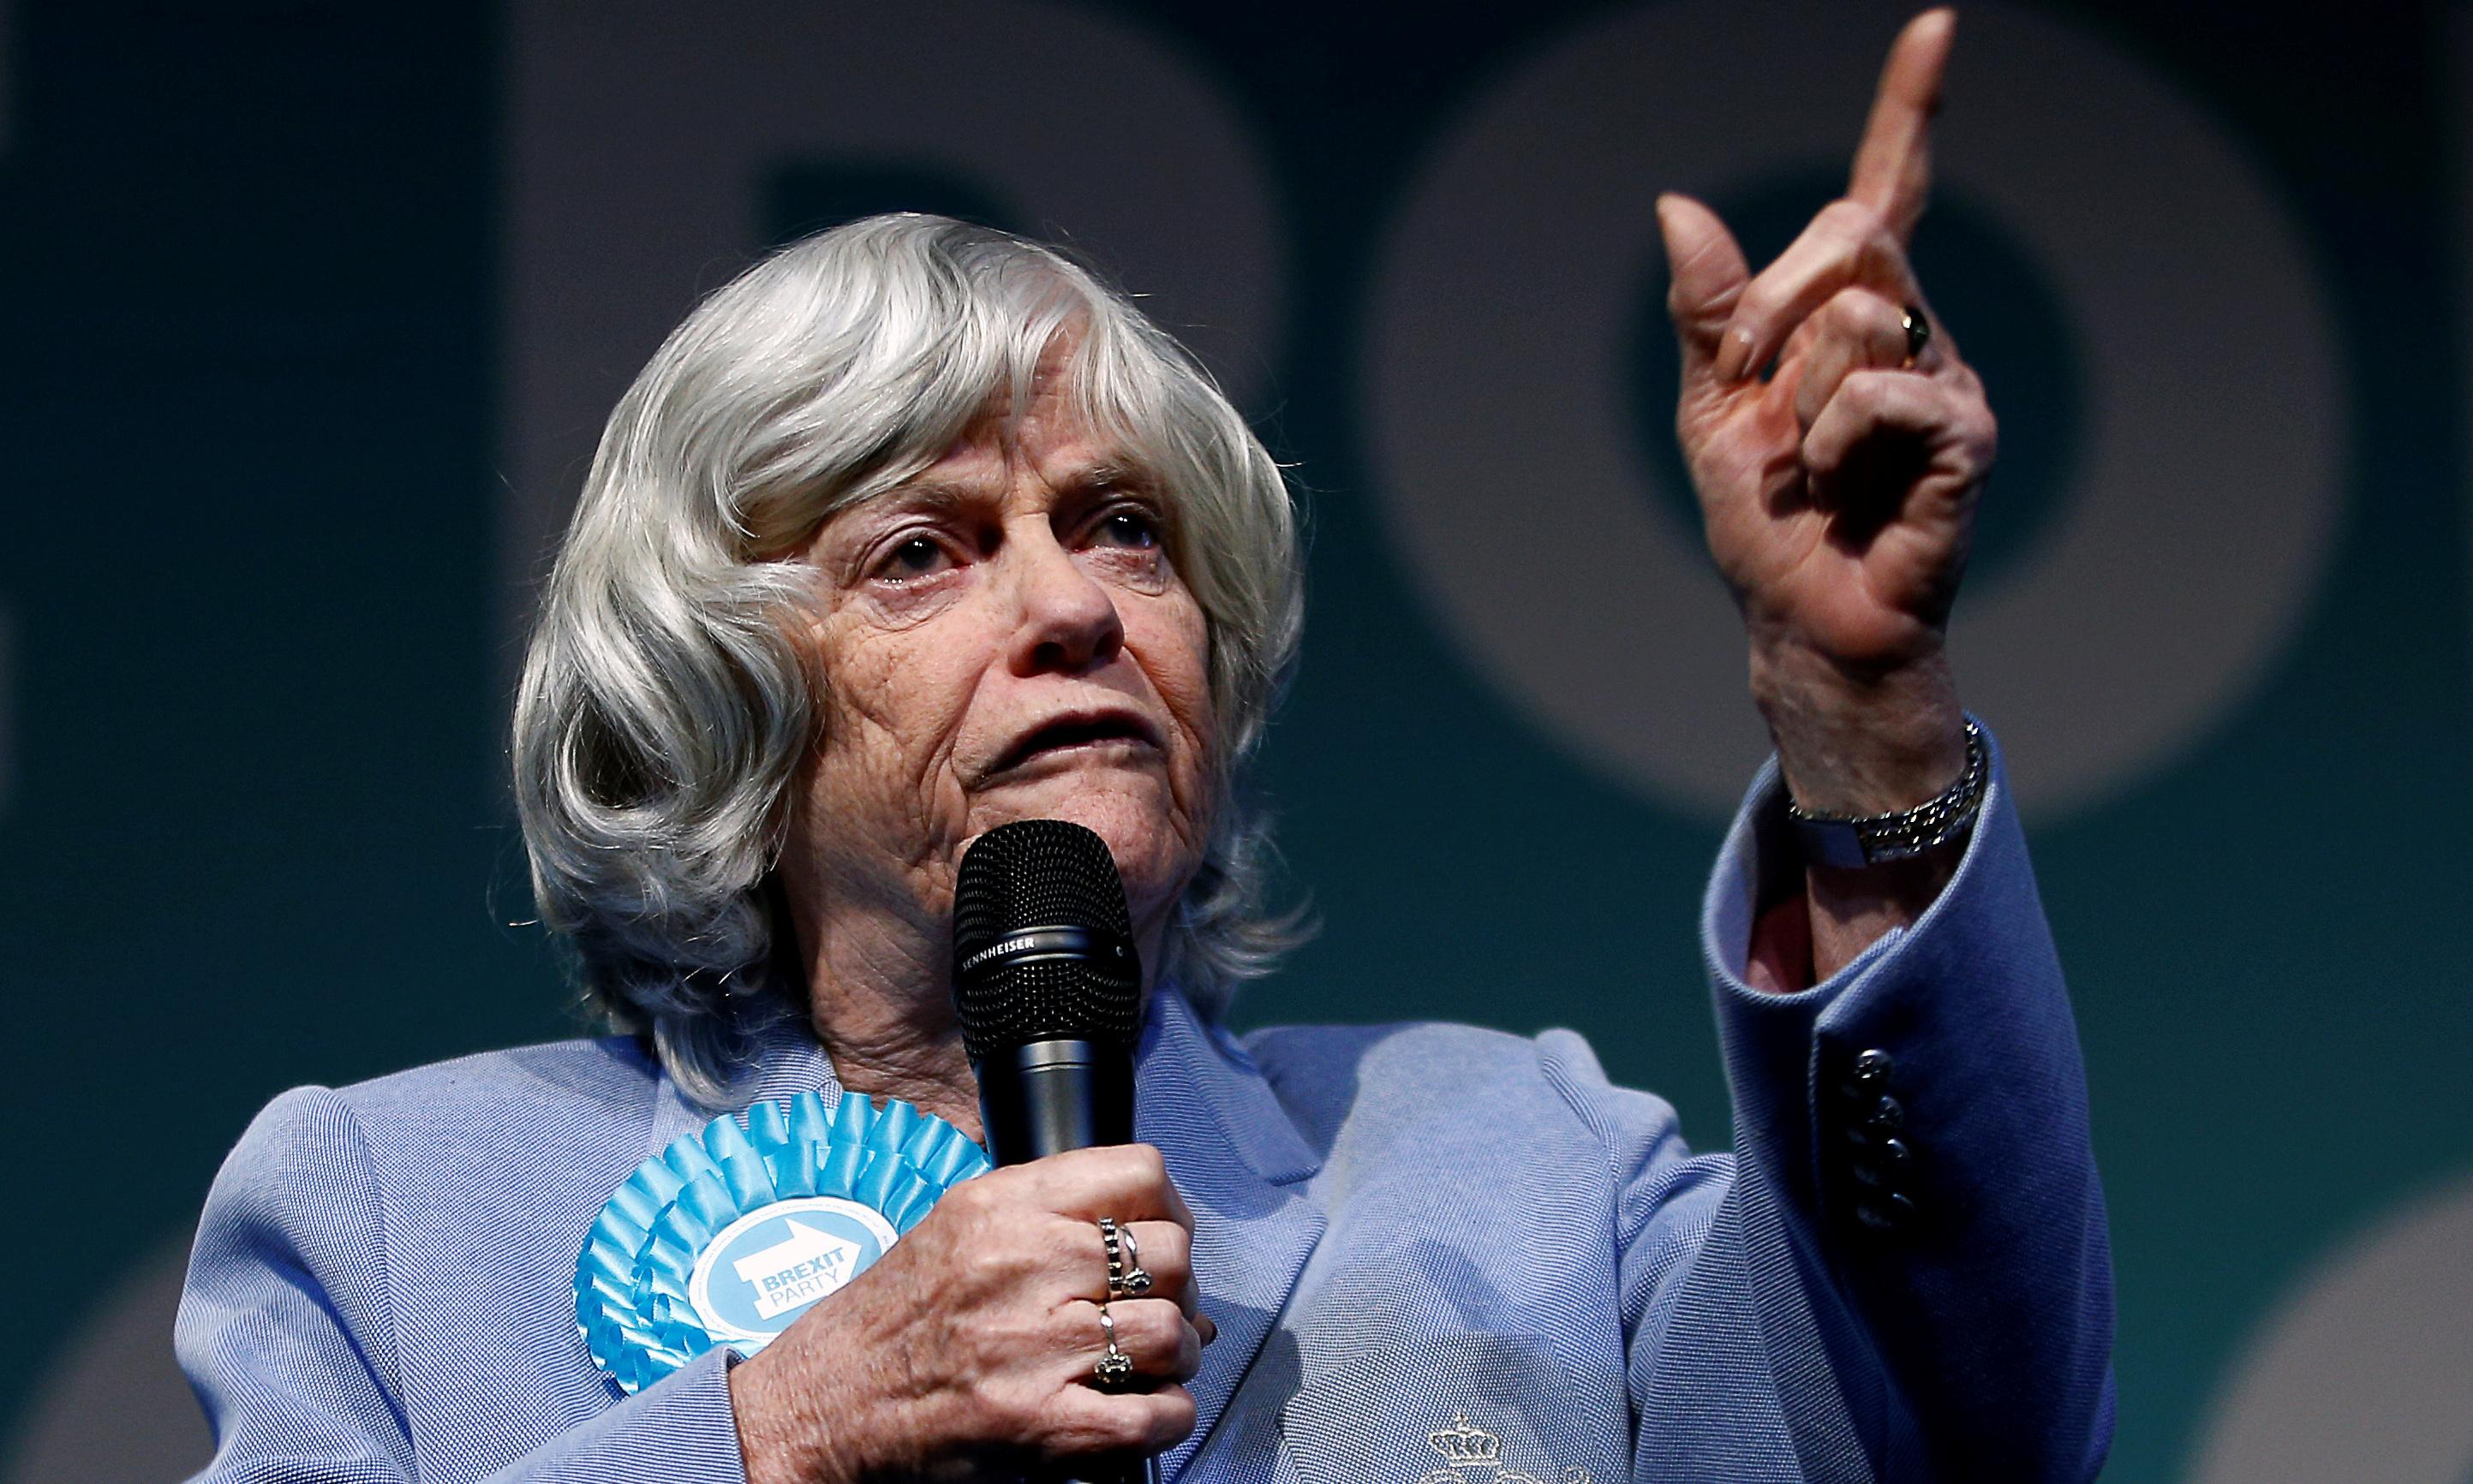 Ann Widdecombe show in Lancashire theatre to go ahead amid gay remarks row